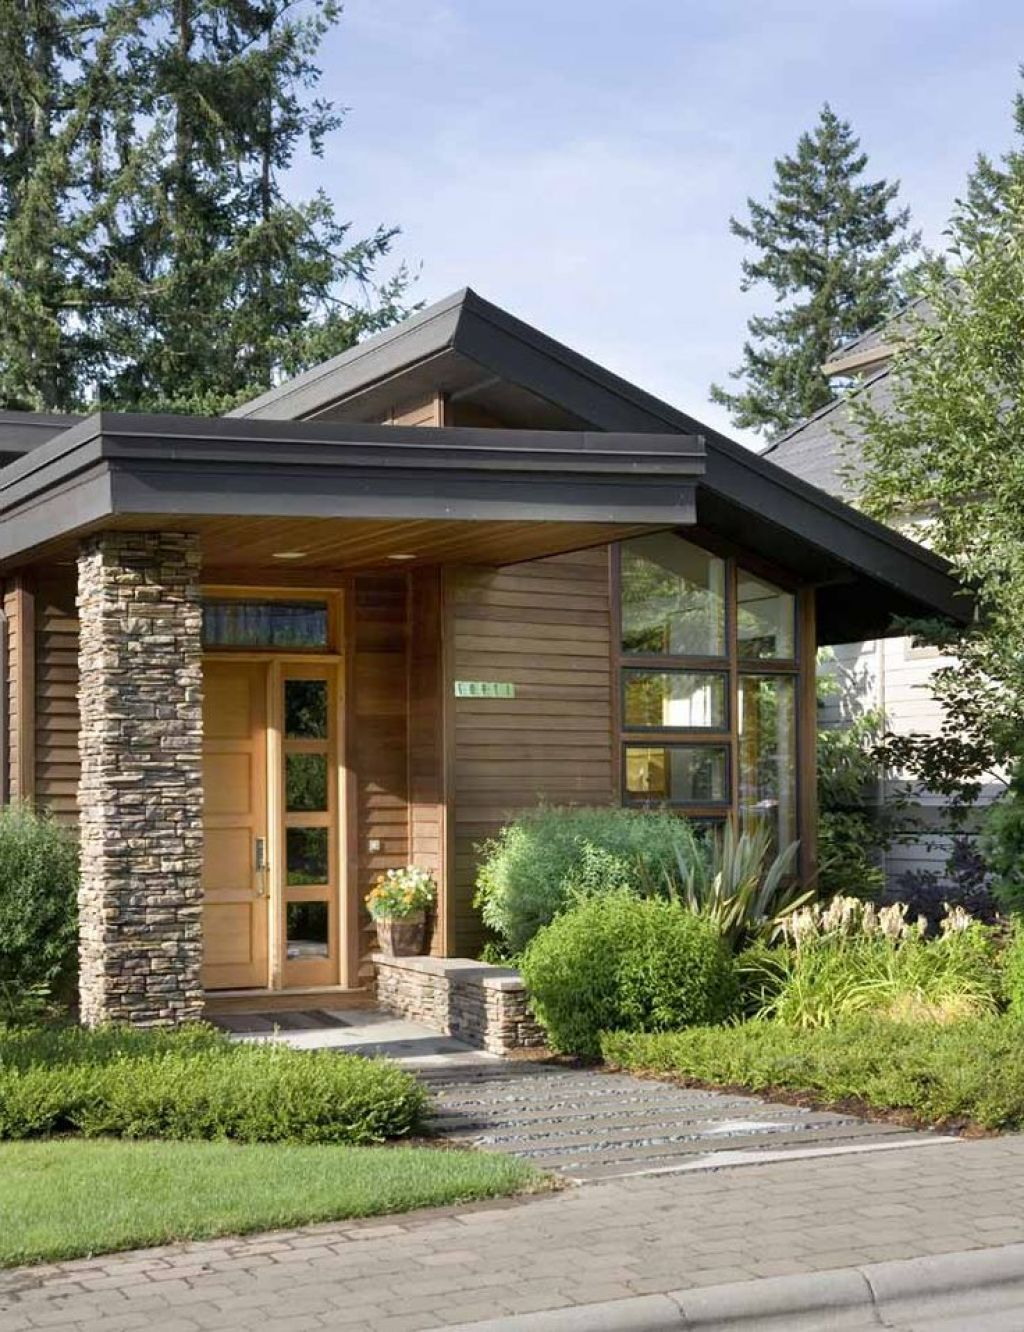 Home Plans Nice Interior And Exterior Home Design With